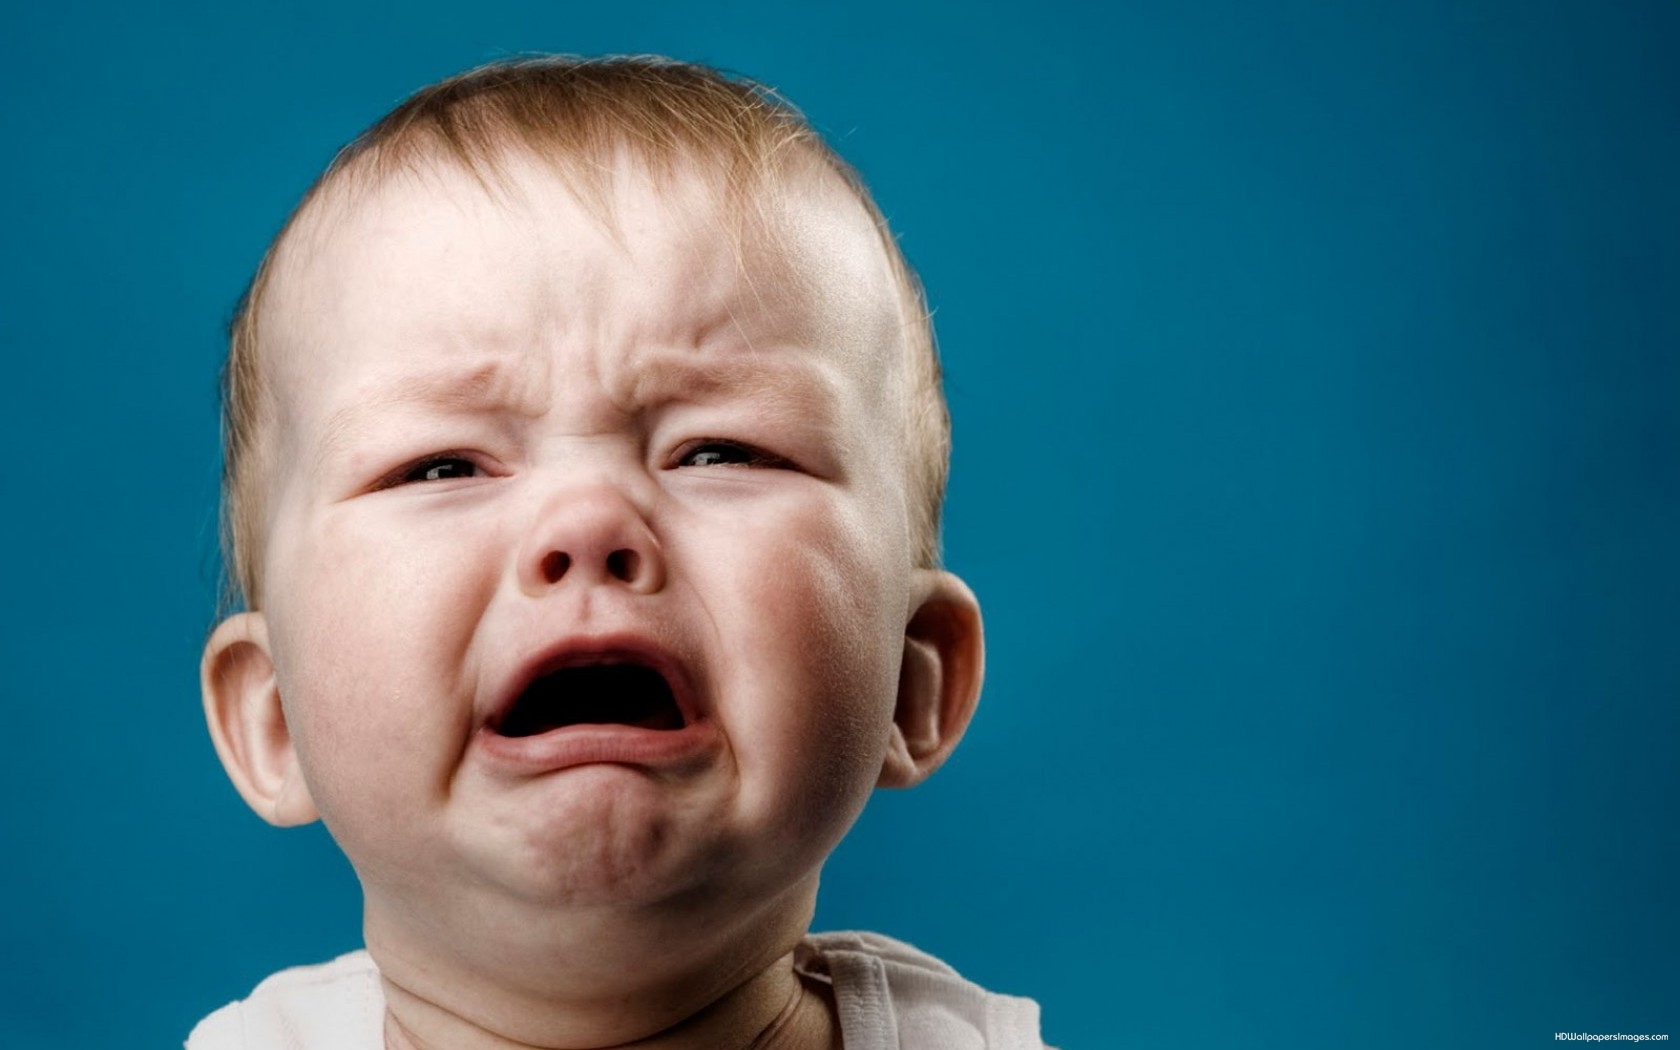 Cute-Baby-Boy-Crying-HD-Wallpaper-For-Desktop-Background